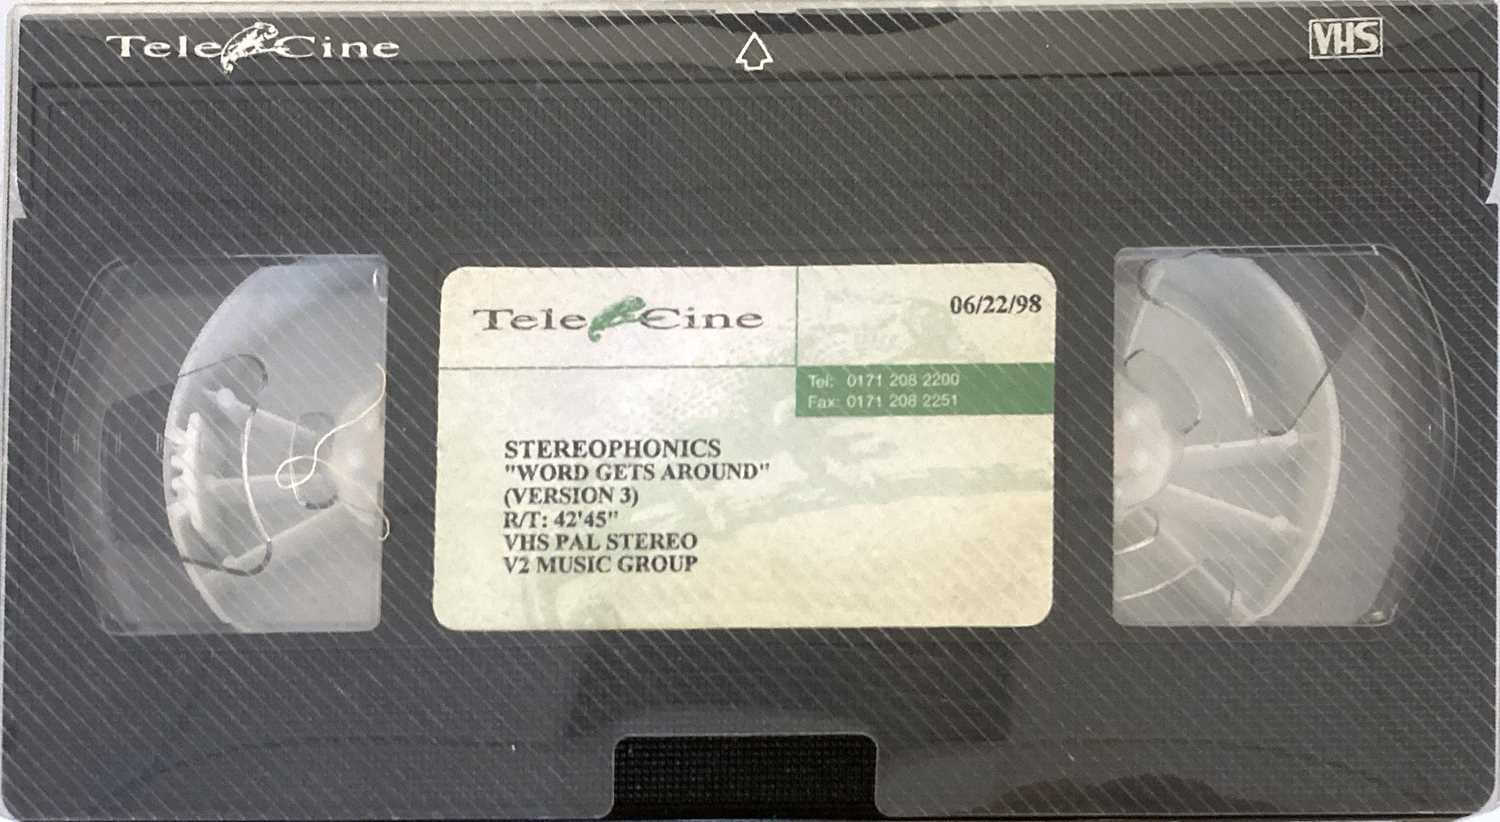 STEREOPHONICS 1990S PROMOTIONAL CASSETTES AND VHS. - Image 2 of 5